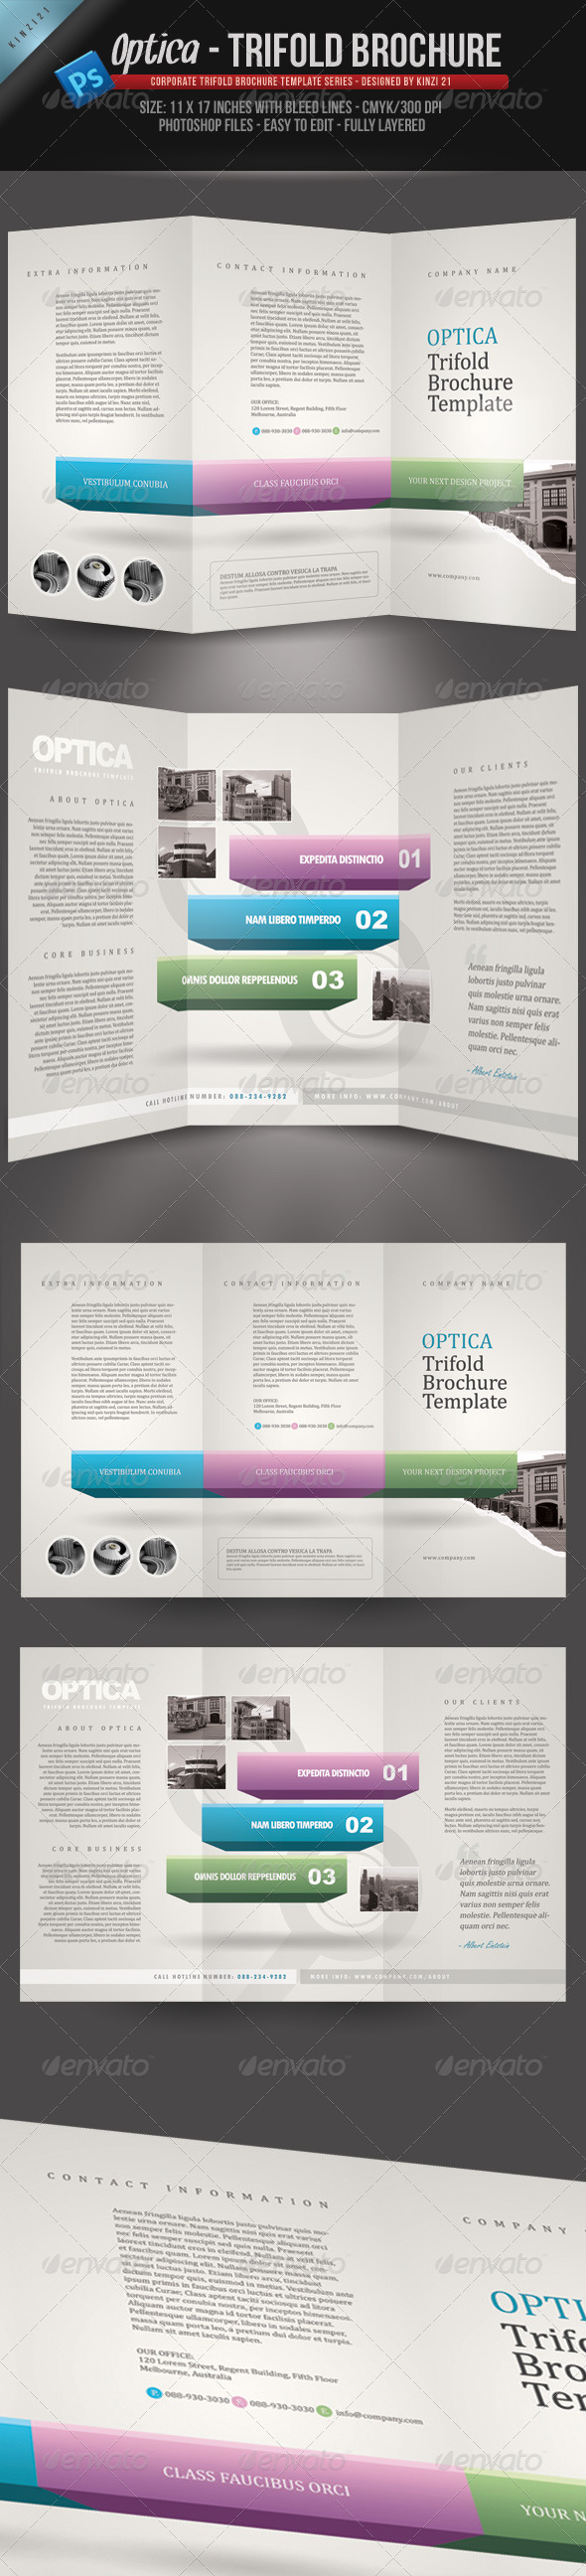 GraphicRiver Optica Trifold Brochure Template 263175